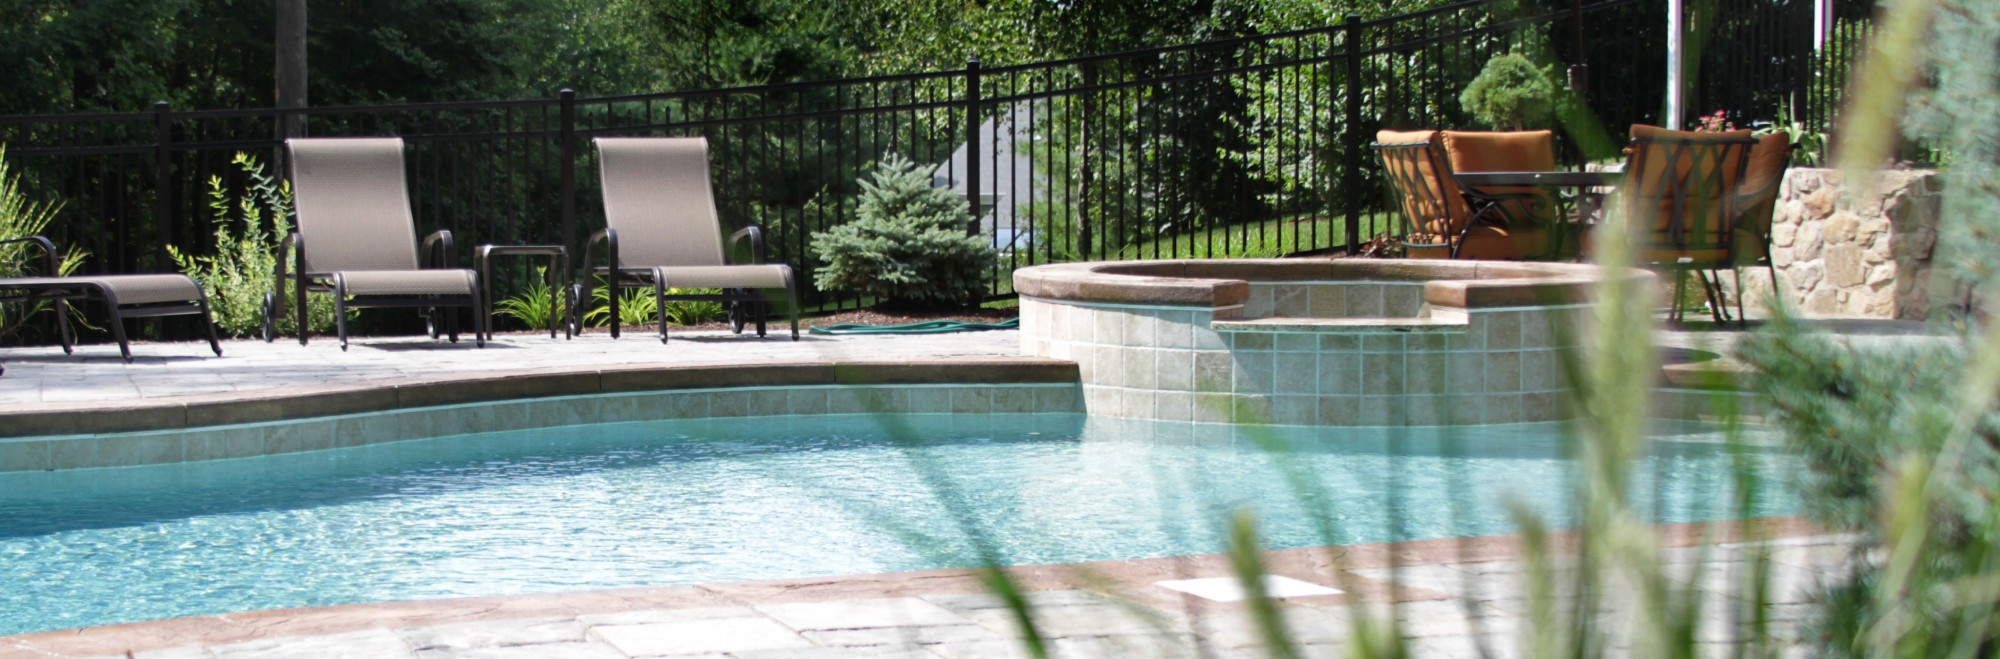 gunite swimming pool with spa in Brookfield CT